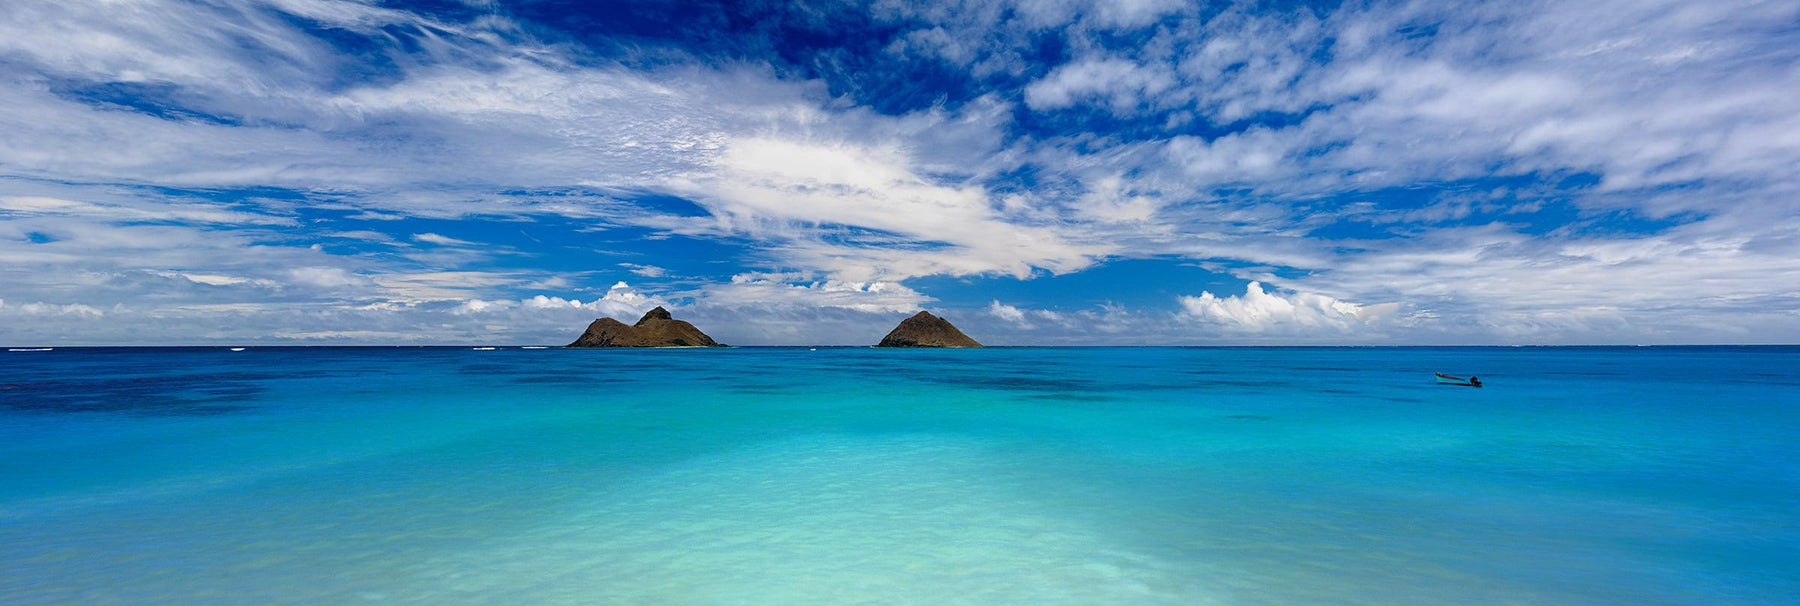 Bright turquoise ocean and two small islands off the coast of Lanikai Hawaii